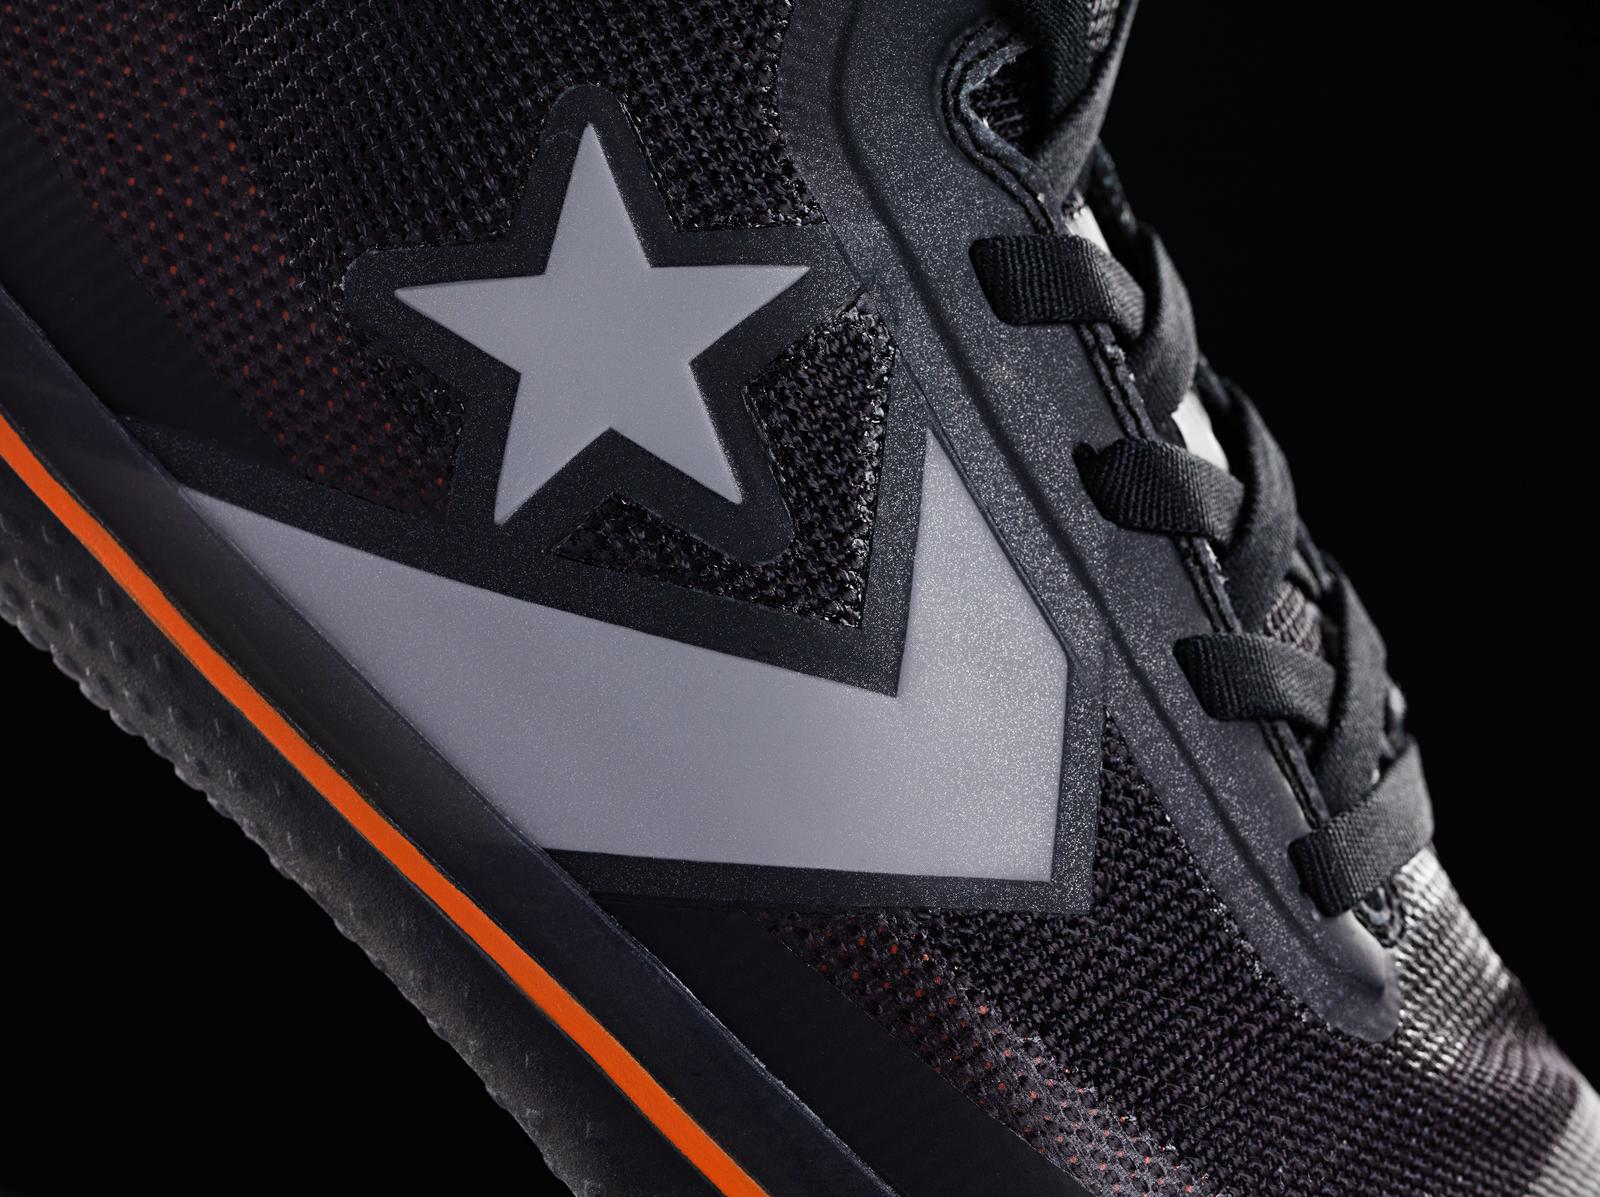 The Converse All Star Pro BB with Drop in Nike React midsole